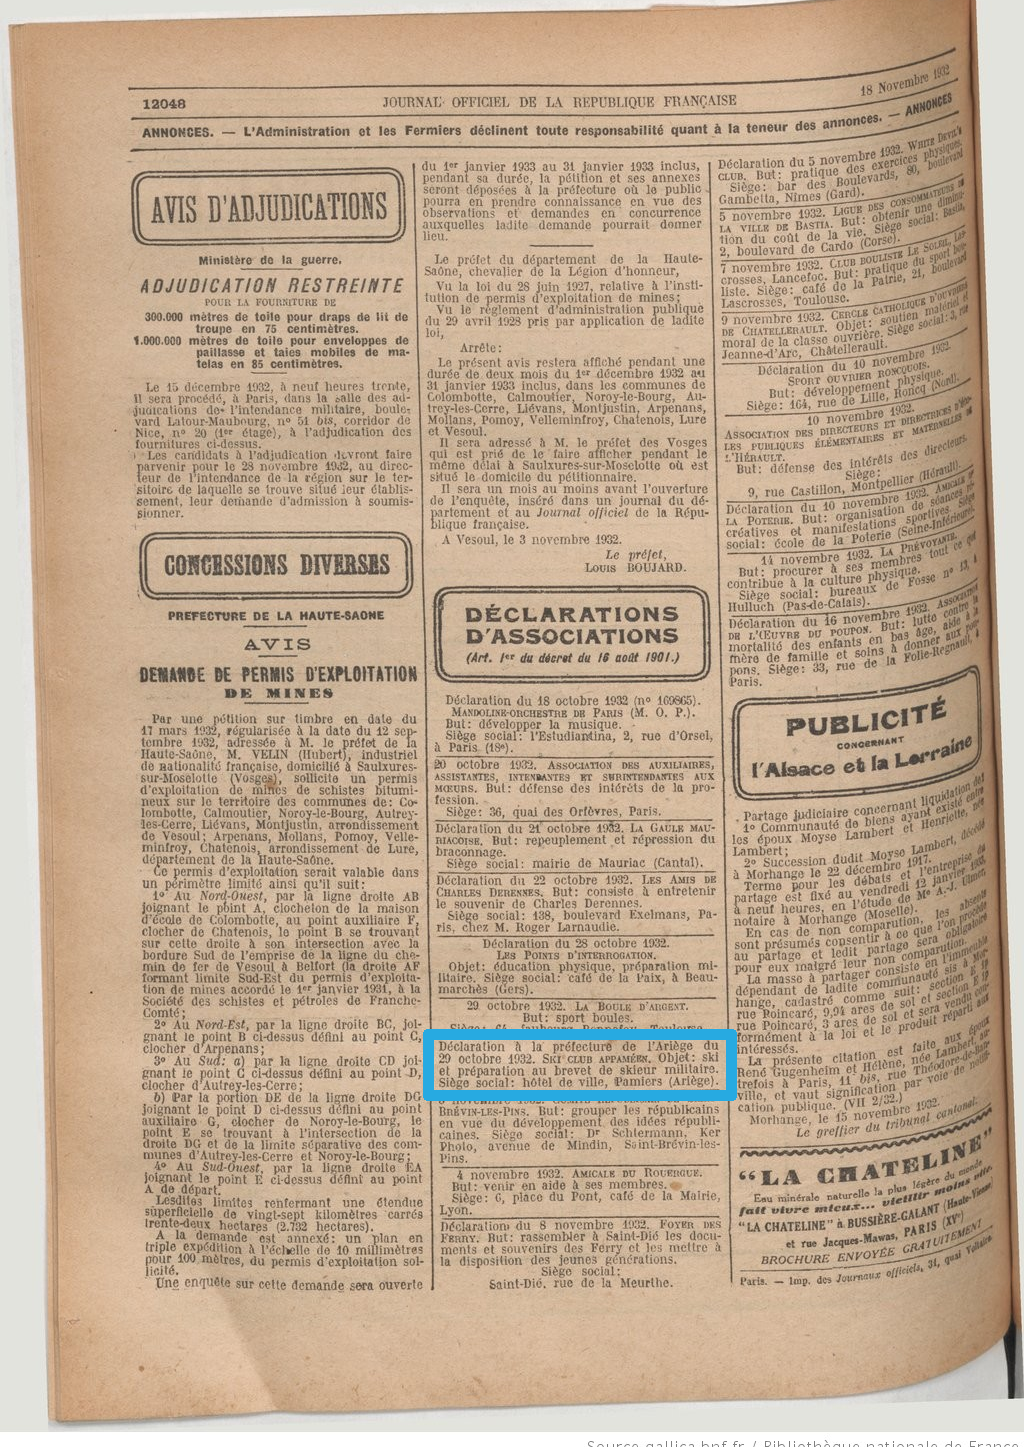 1_SMBA - Dépot Journal Officiel 19321118